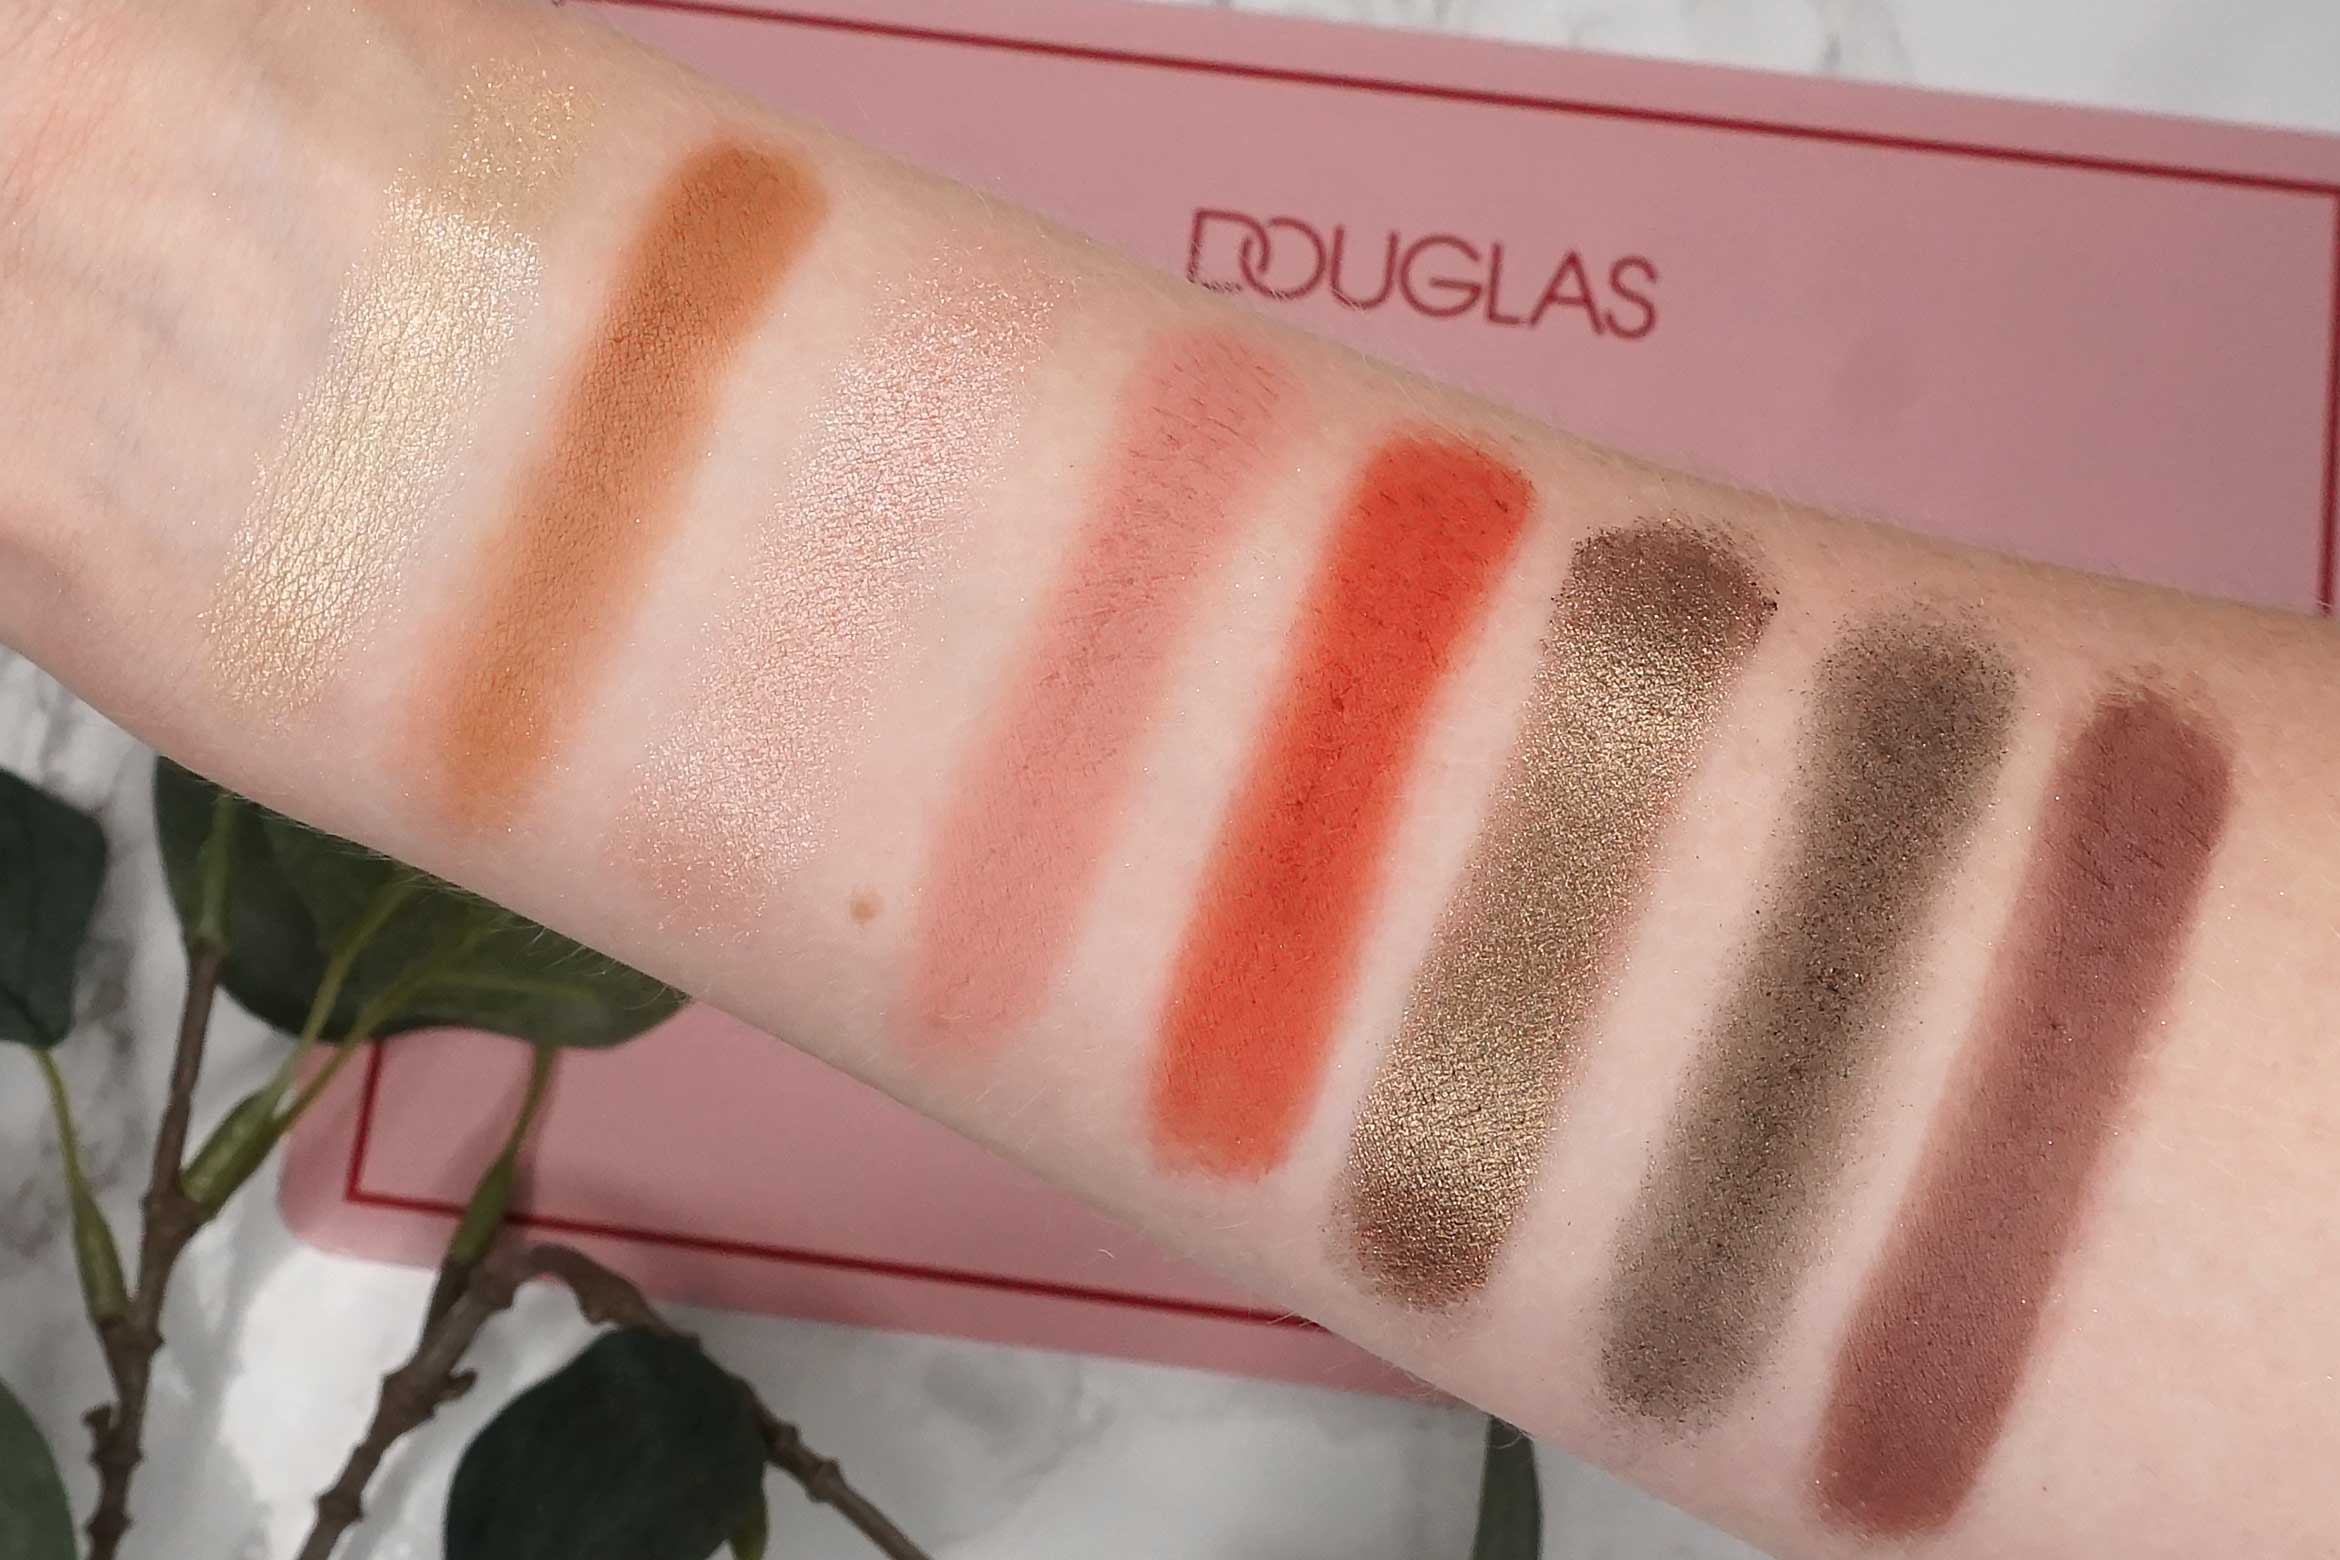 douglas-deluxe-palette-swatch-review-4